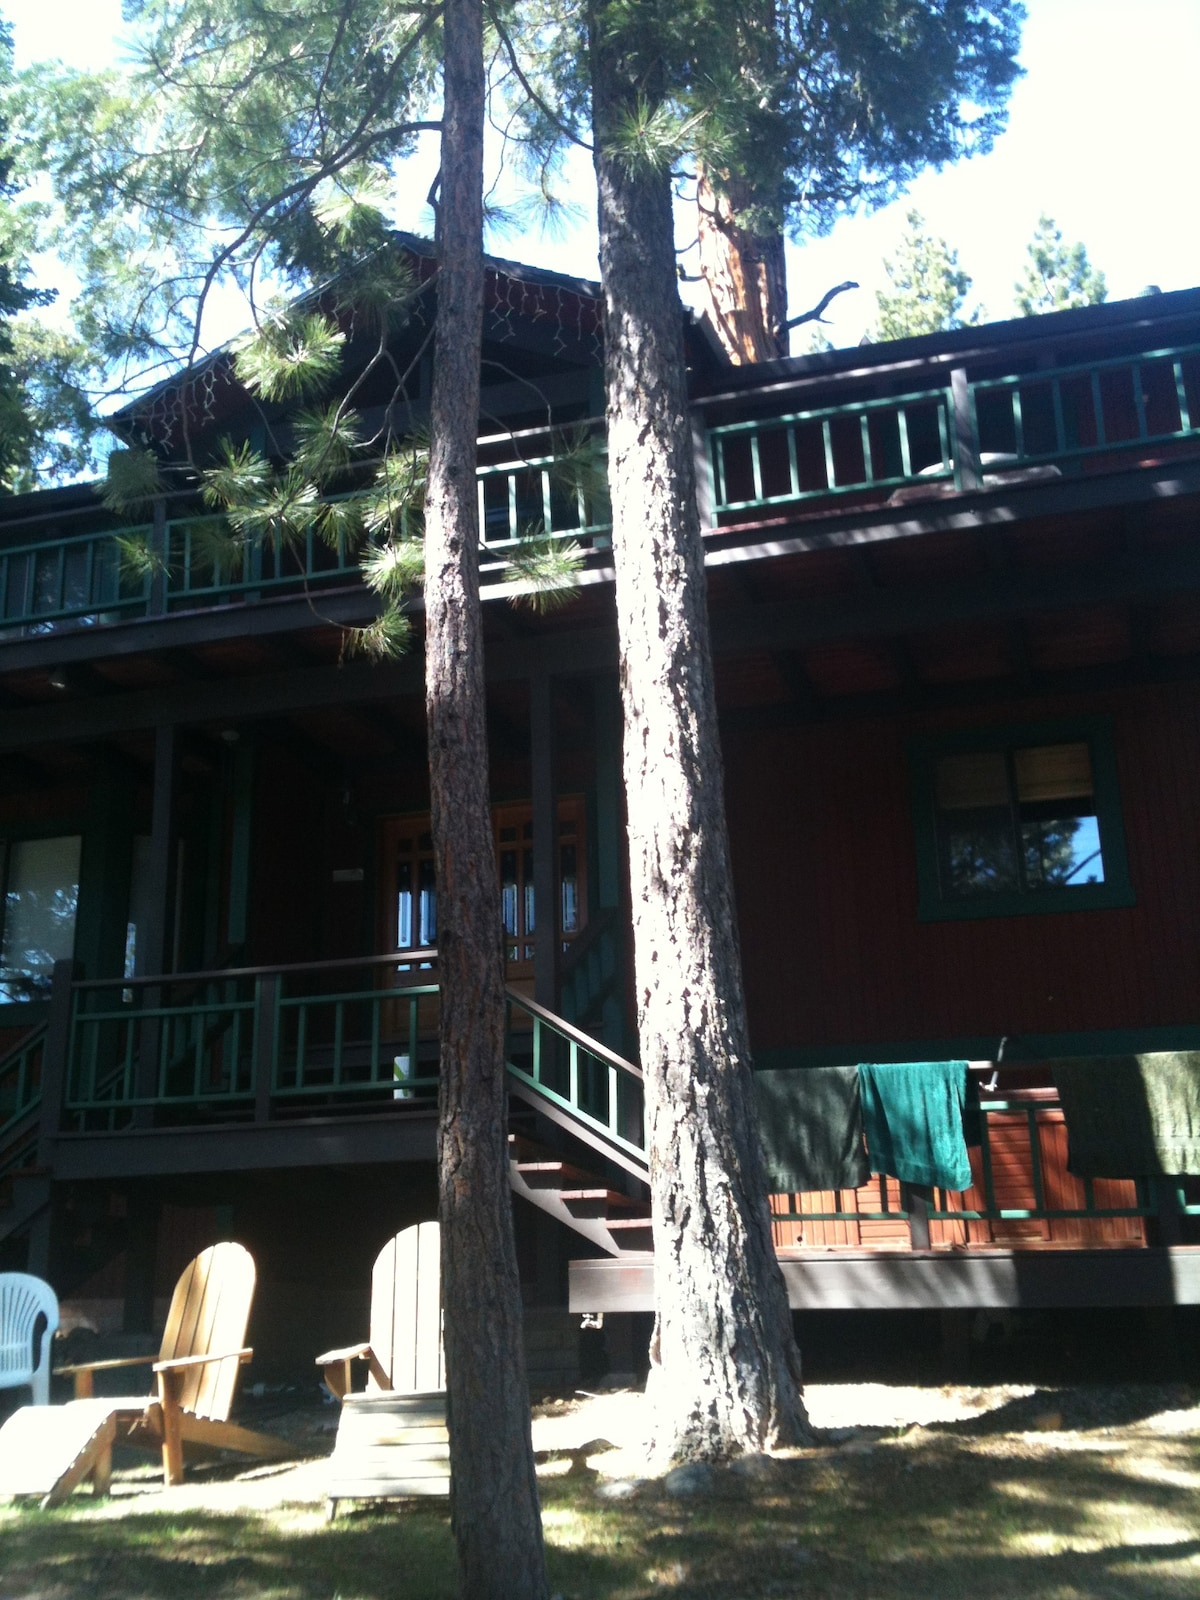 Large spacious comfortable house in quiet neighborhood-near Tahoe beaches, entertainment,and hikng trail